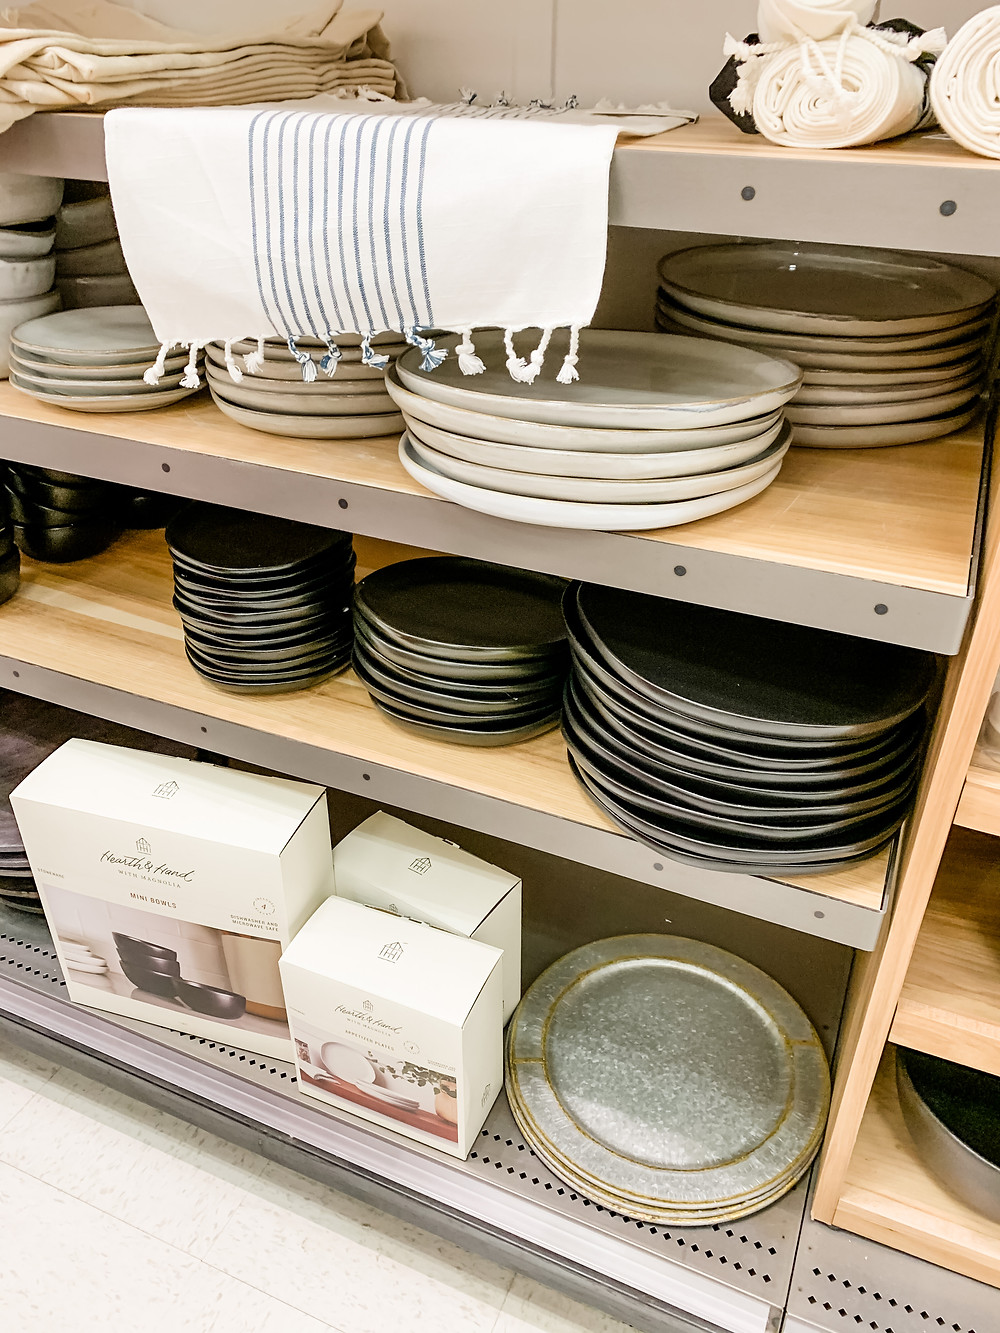 hearth and hand magnolia target stoneware plates and dinnerware